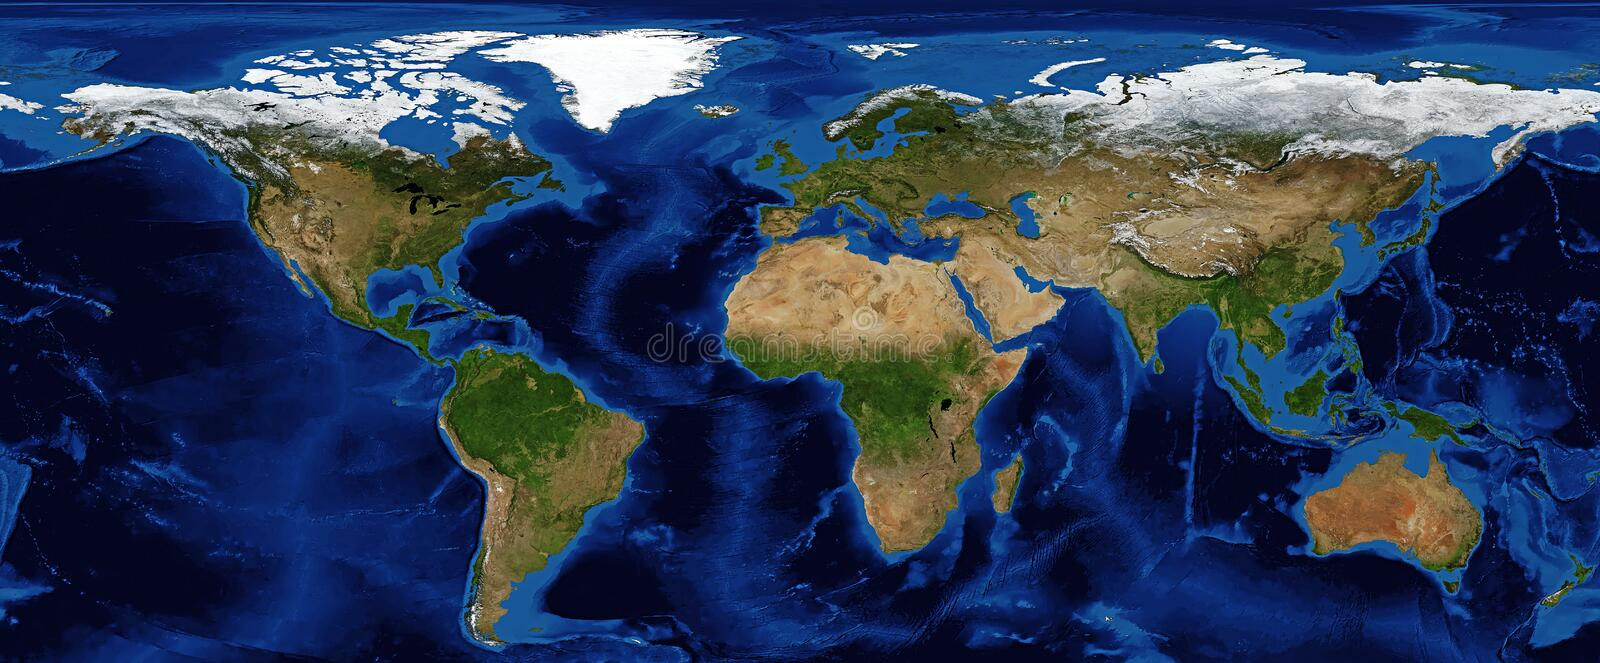 World Map Shaded Relief with Bathymetry. And snow cover in Fall, showing continents stock photography